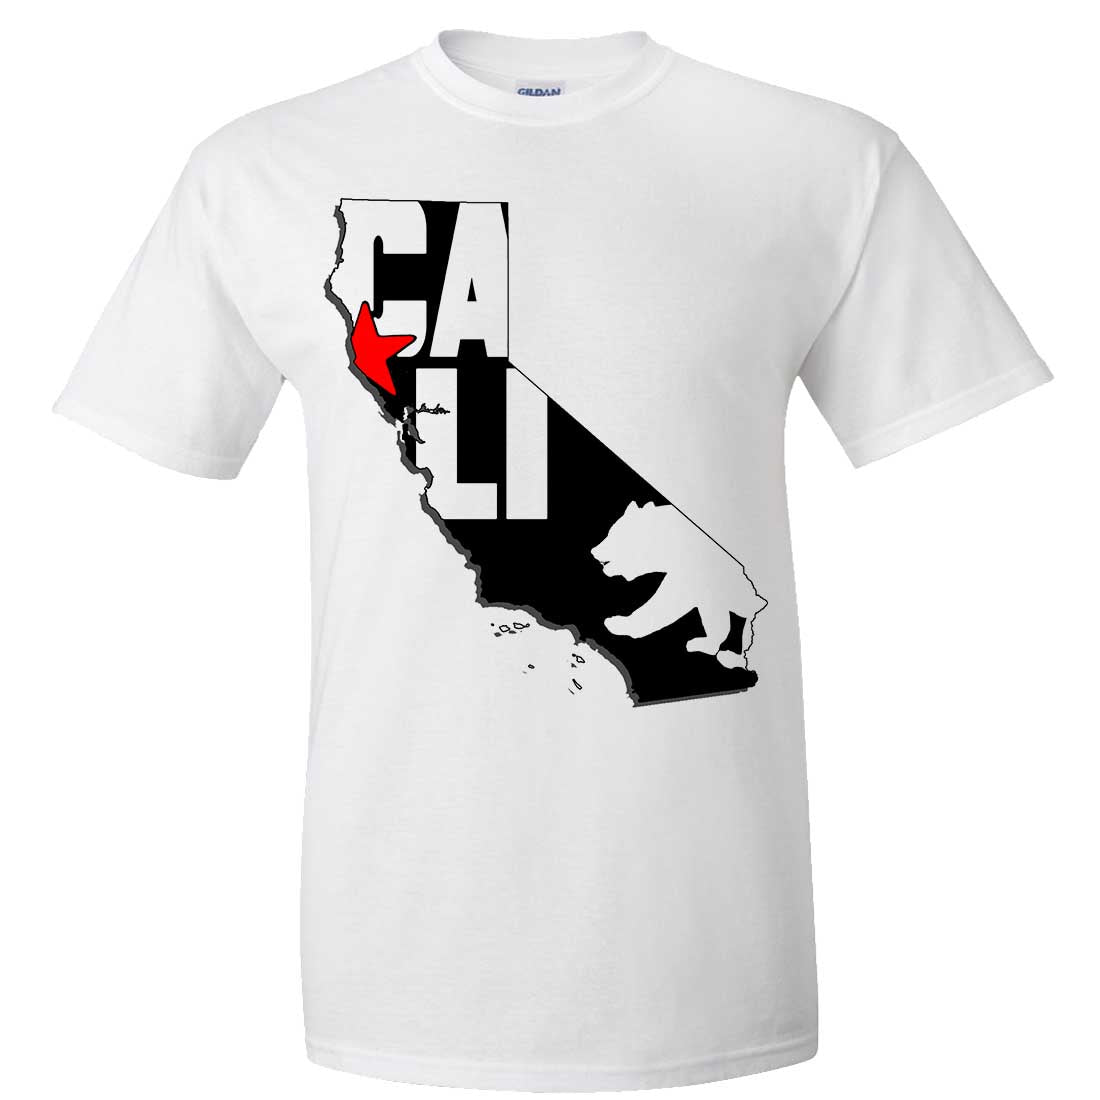 Cali Map Silhouette Outline Asst Colors T-shirt/tee